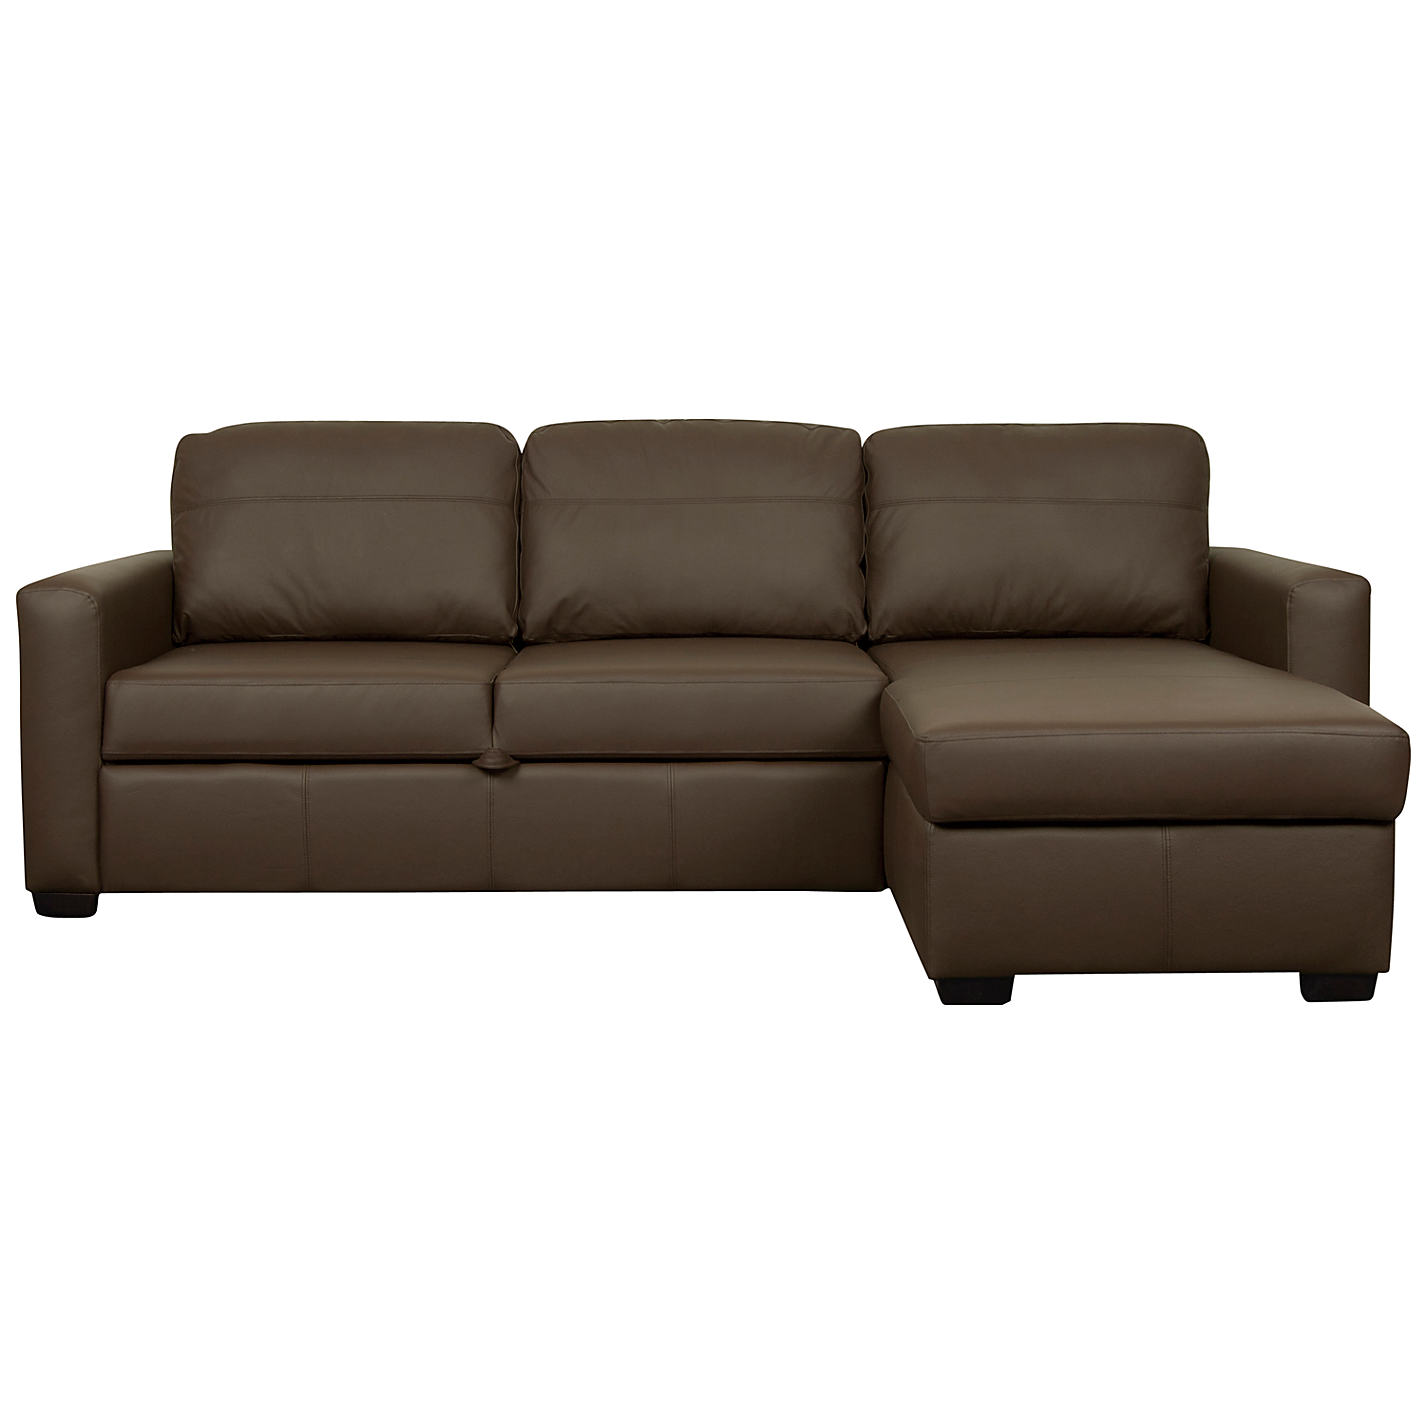 Single sofa bed chair john lewisbuy innovation dublexo for Buy leather sectional sofa bed